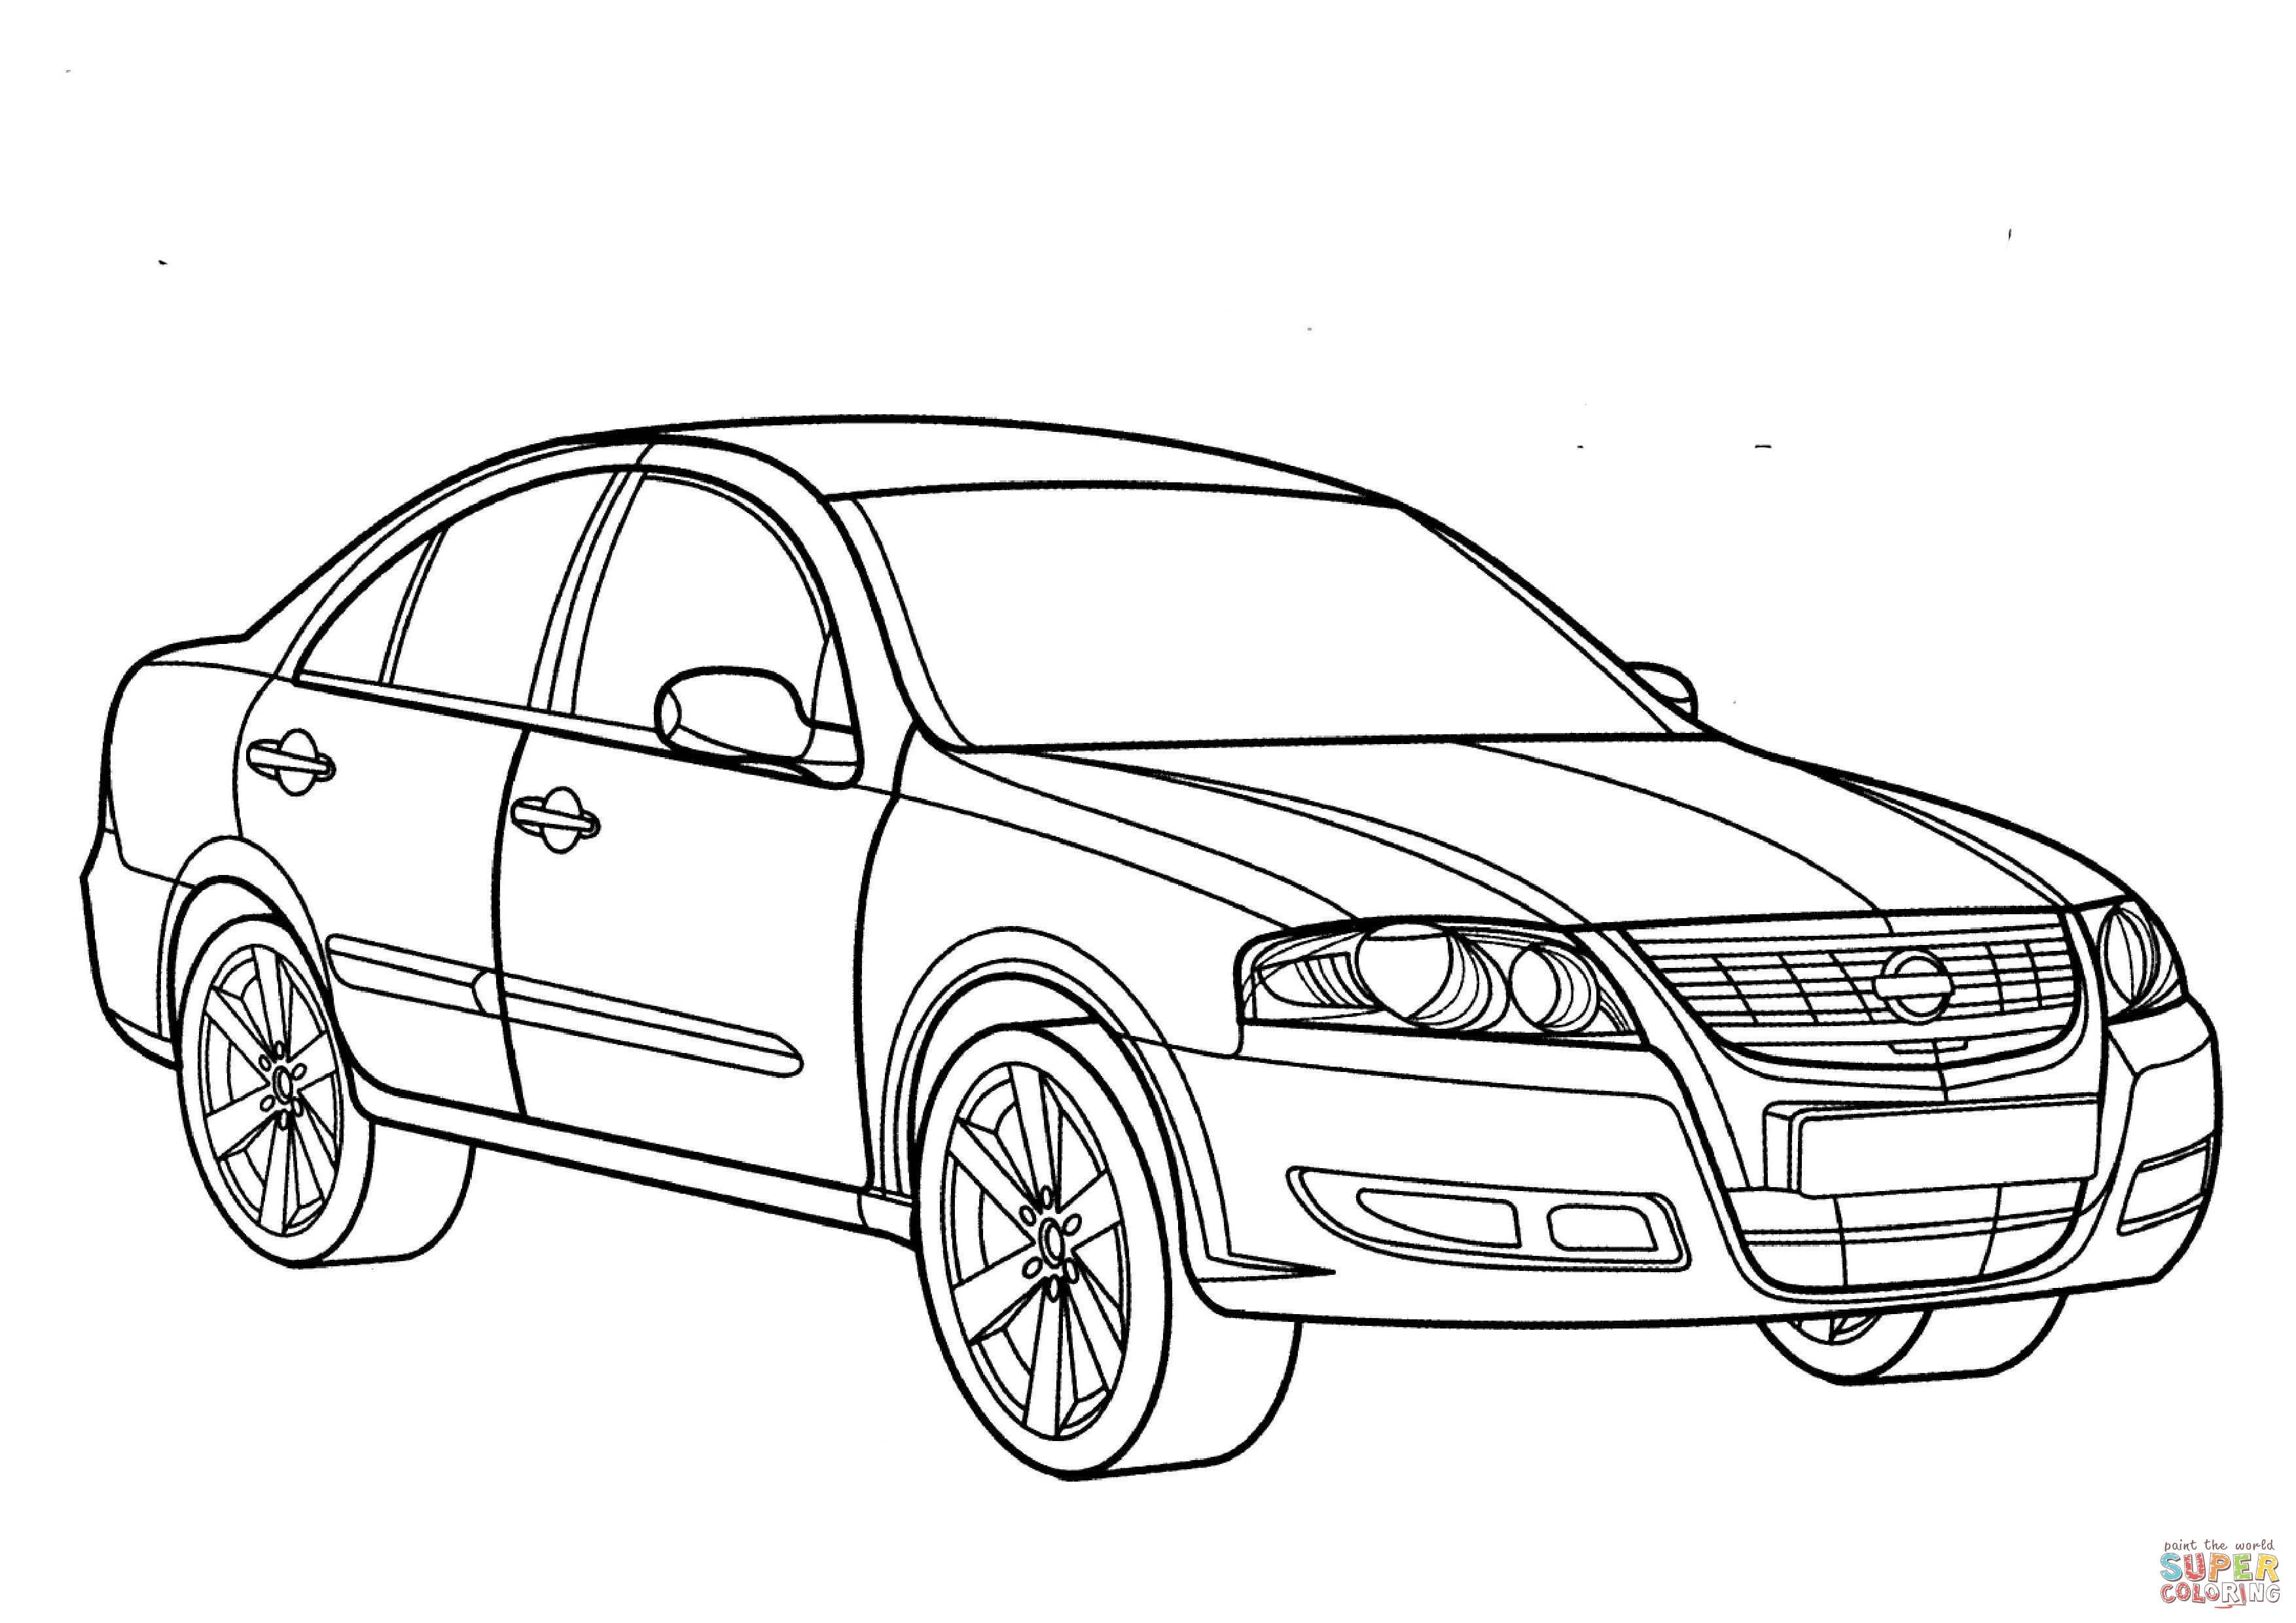 toyota car coloring pages toyota coloring pages free printable toyota coloring pages coloring pages car toyota